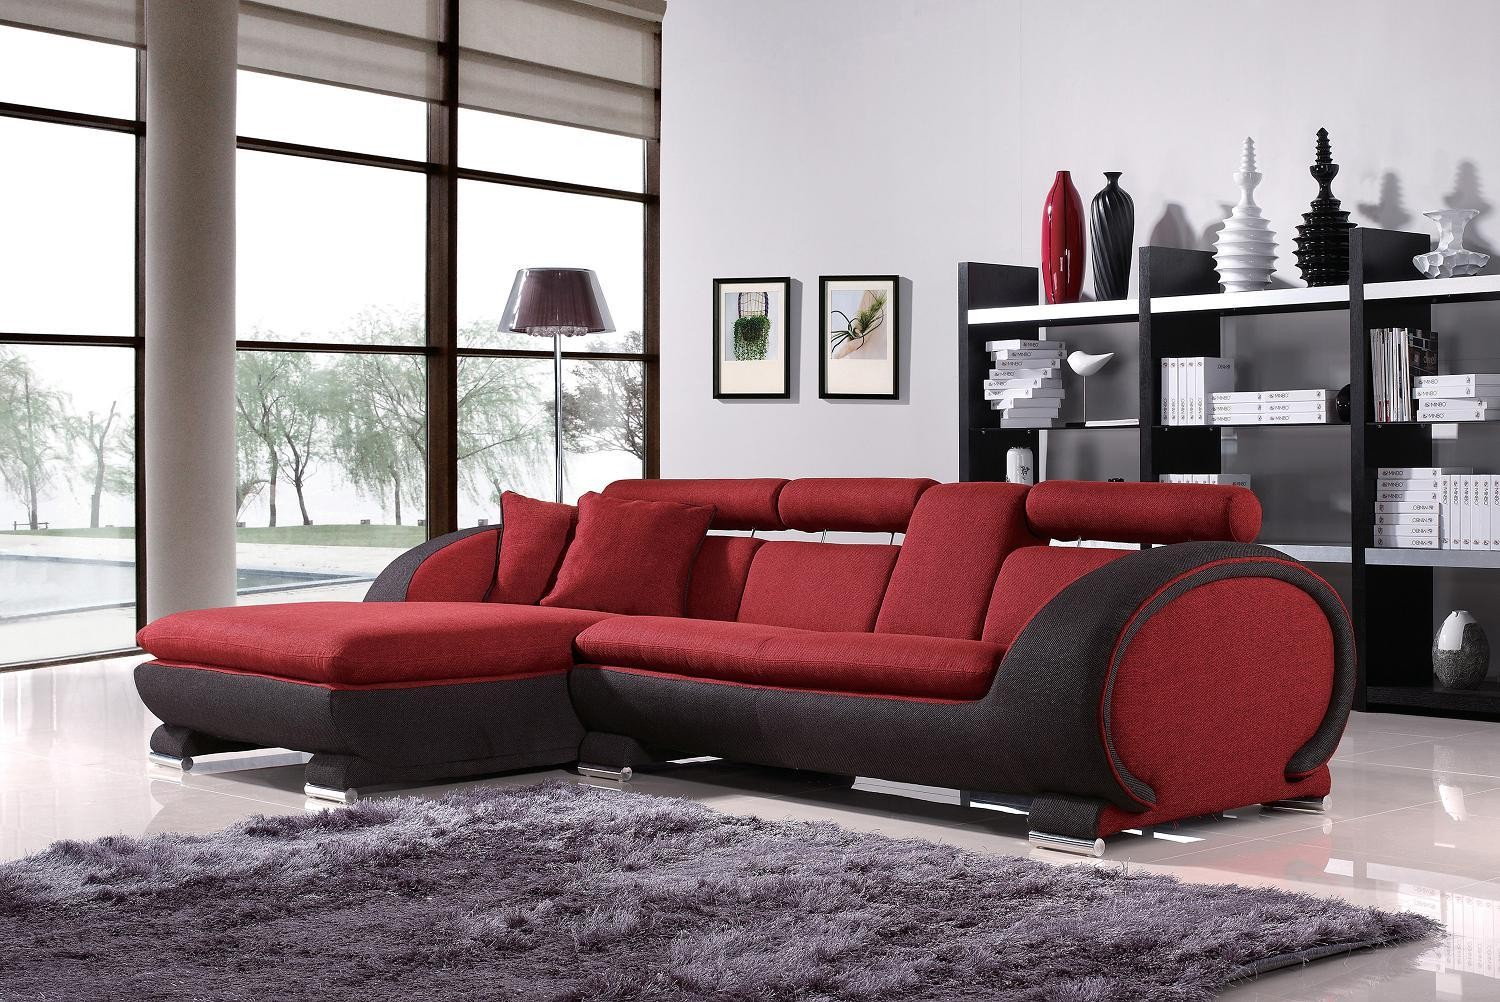 contemporary sectional sofa archives - page 11 of 83 - la